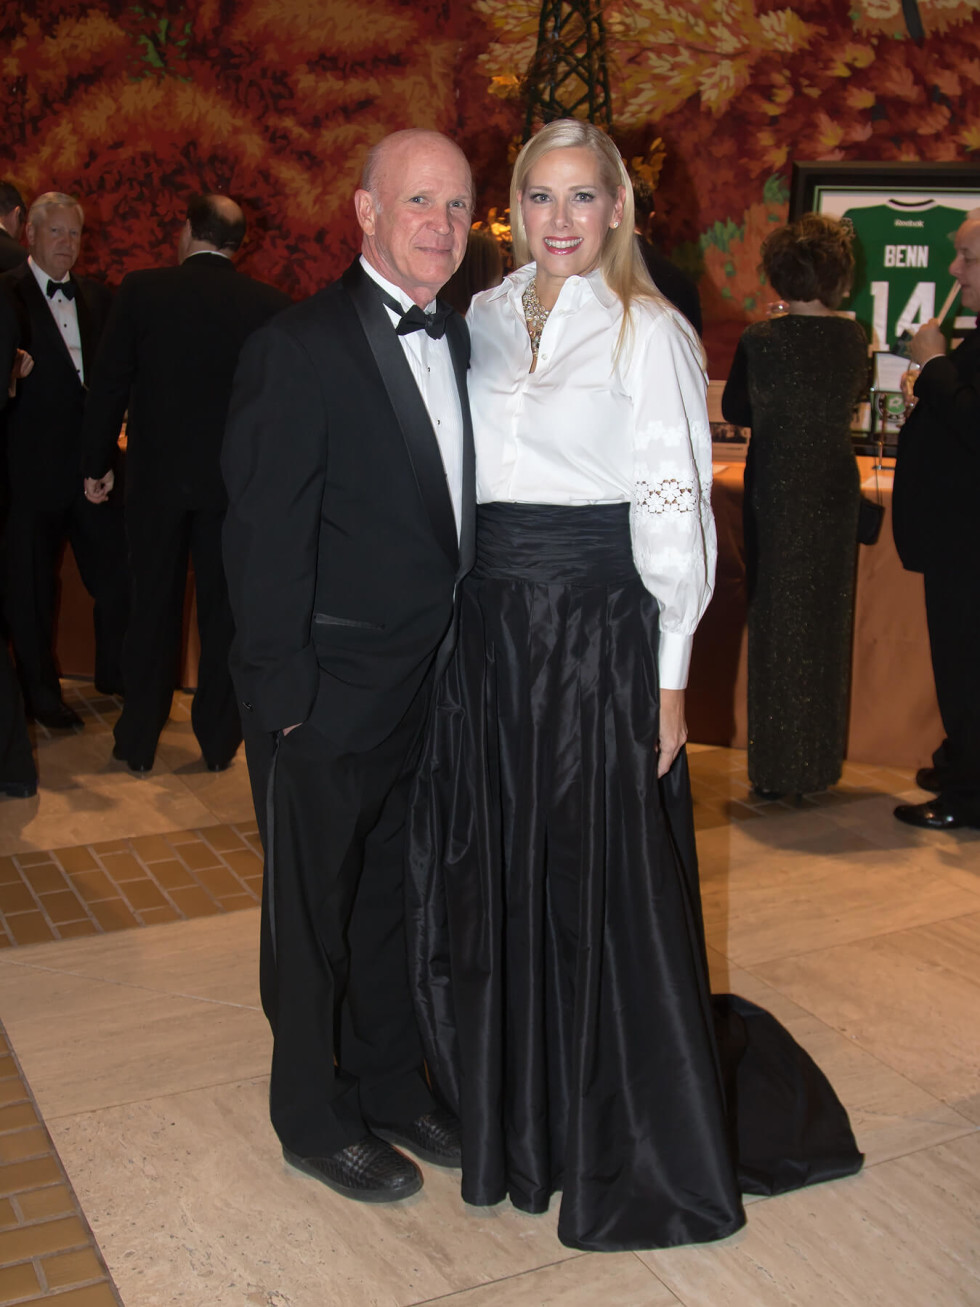 Steve McKnight, Phyllis McKnight (Carolina Herrera)